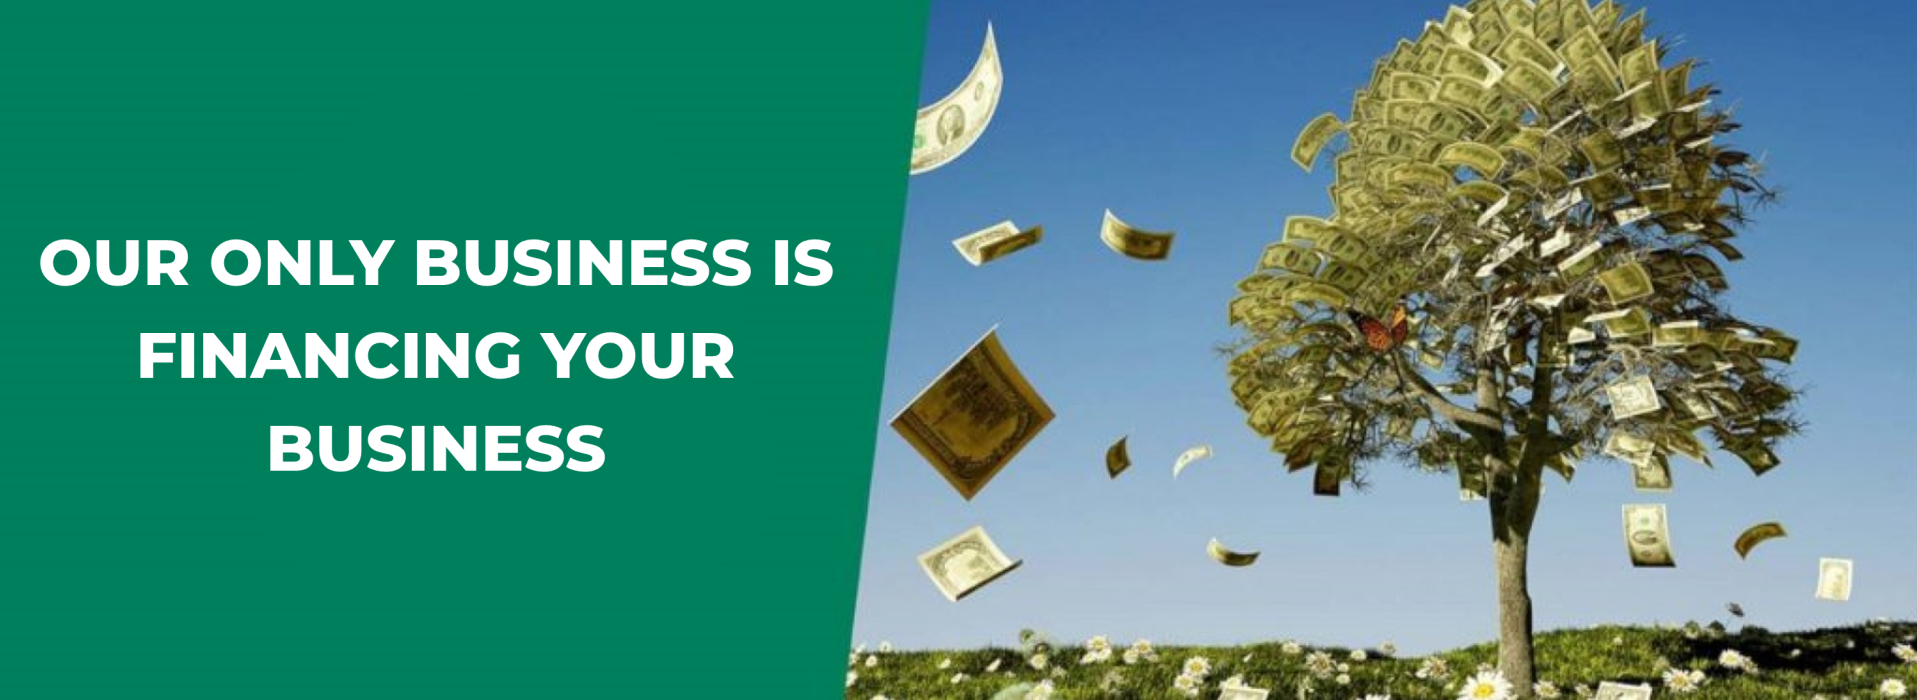 Our only business is financing your business!